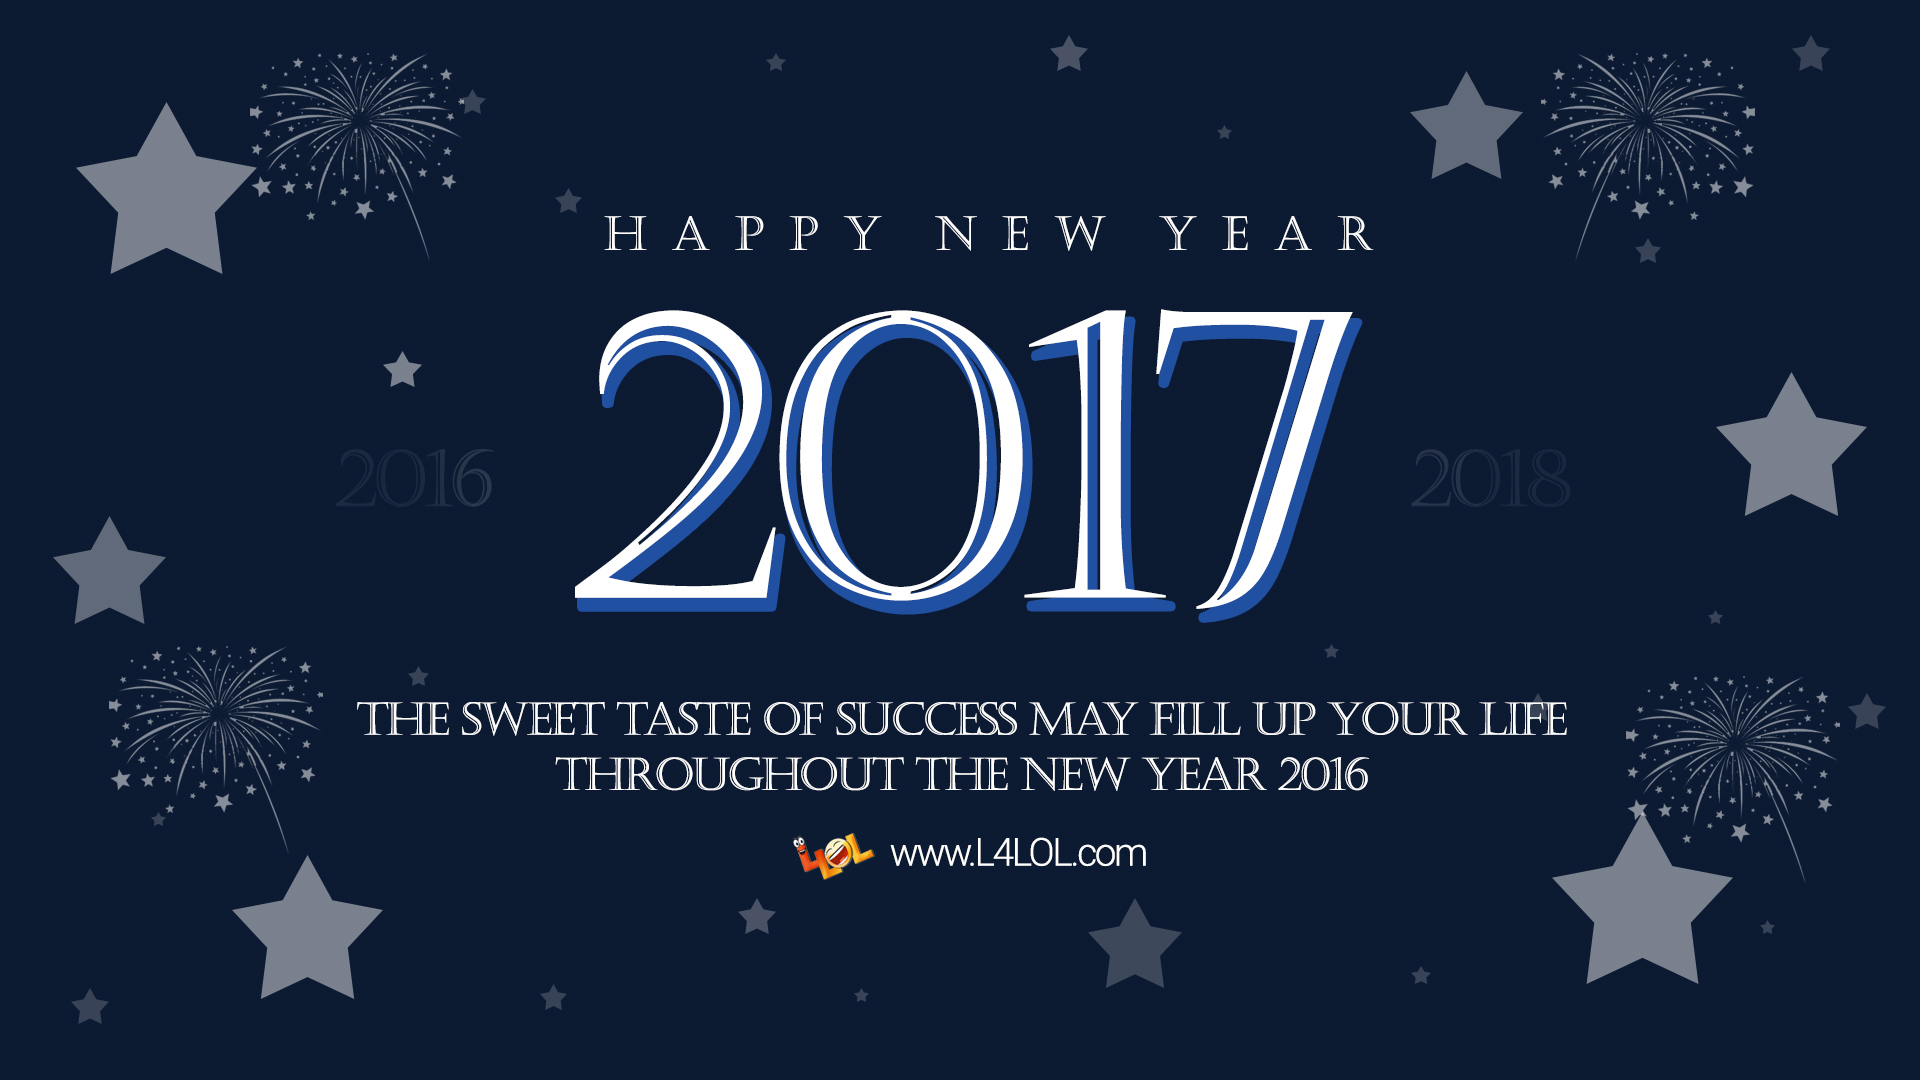 happy new year wishes 2017 wallpaper 1920x1080